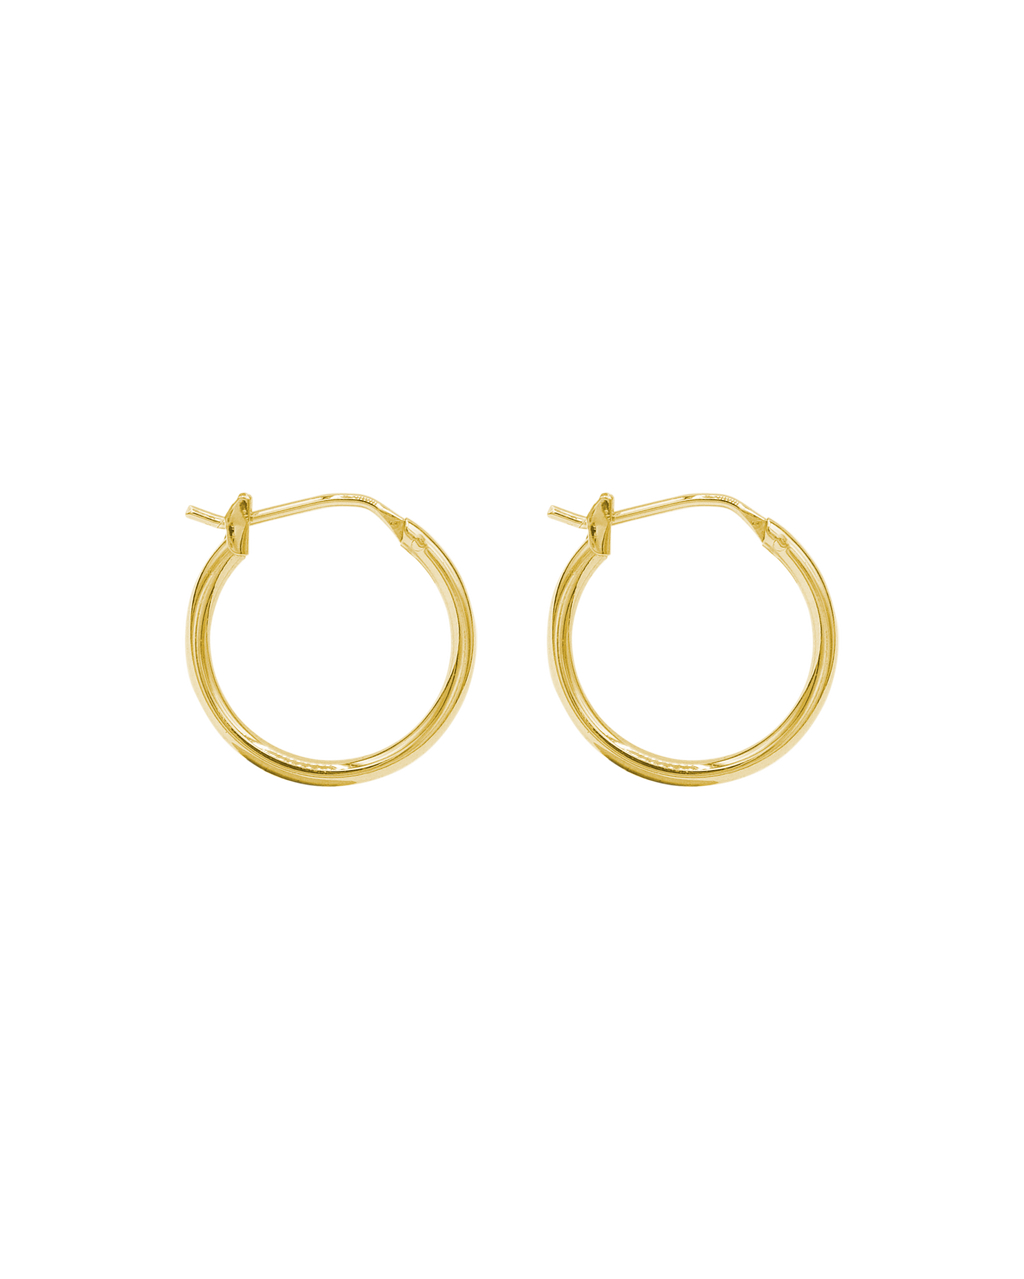 Medium Hoops: 20mm